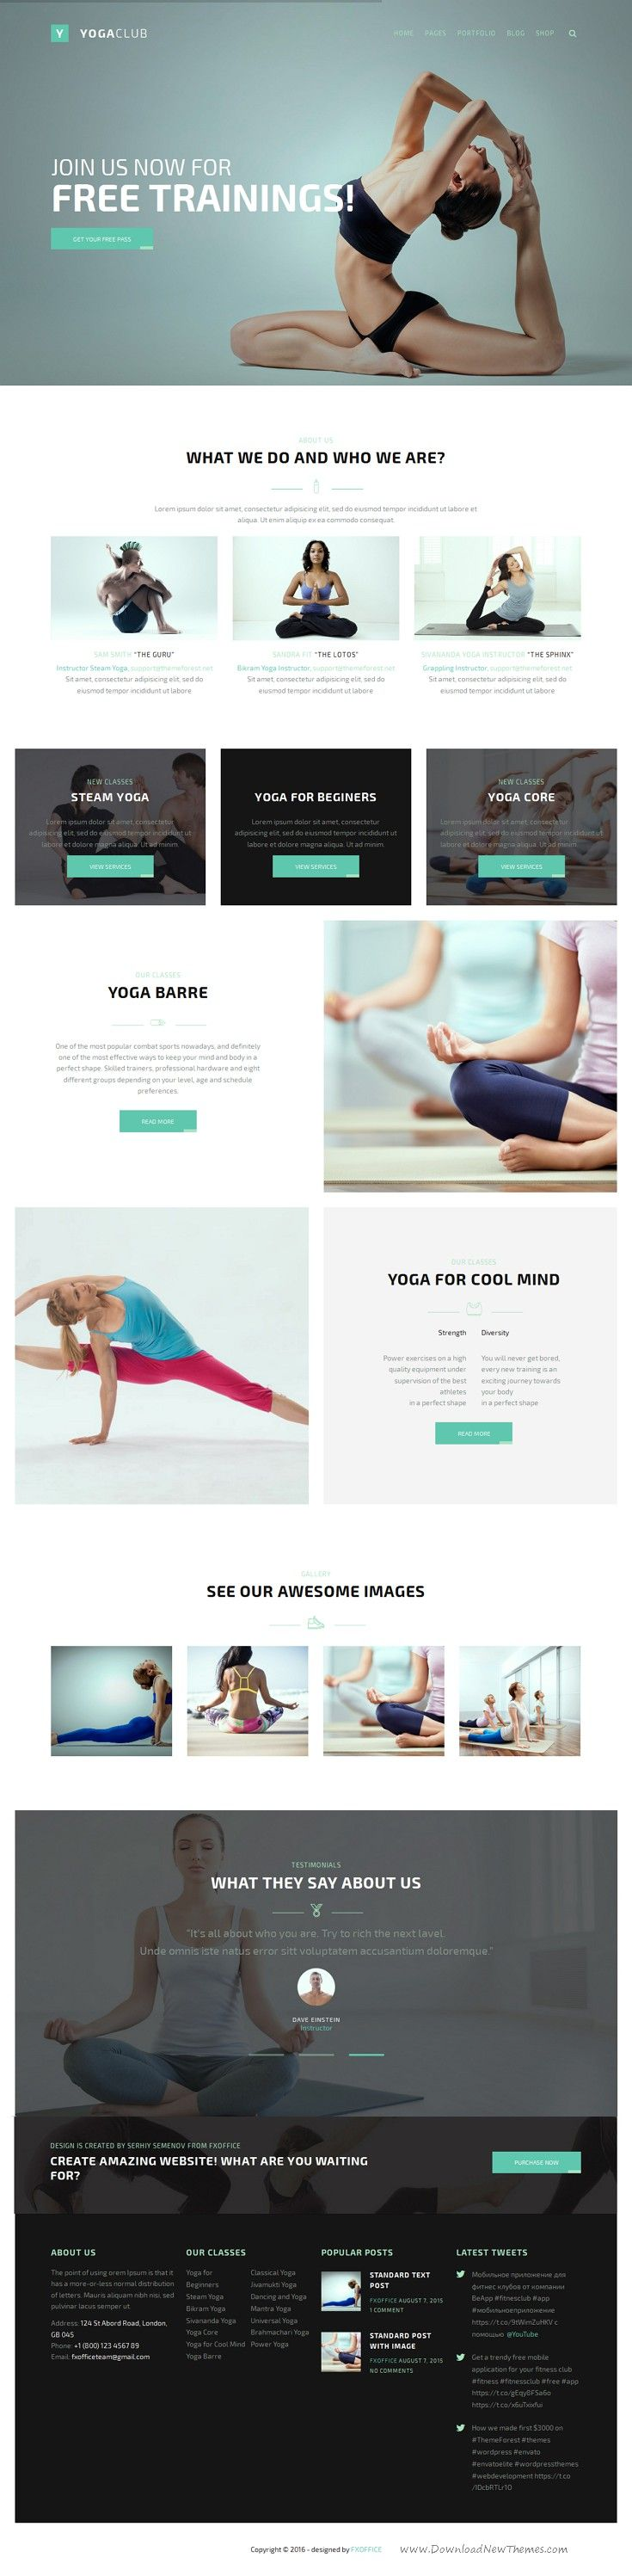 FightClub is a powerful and flexible HTML #template for sports clubs, bodybuilding, #fitness, gyms #yoga centers, website. Download Now!